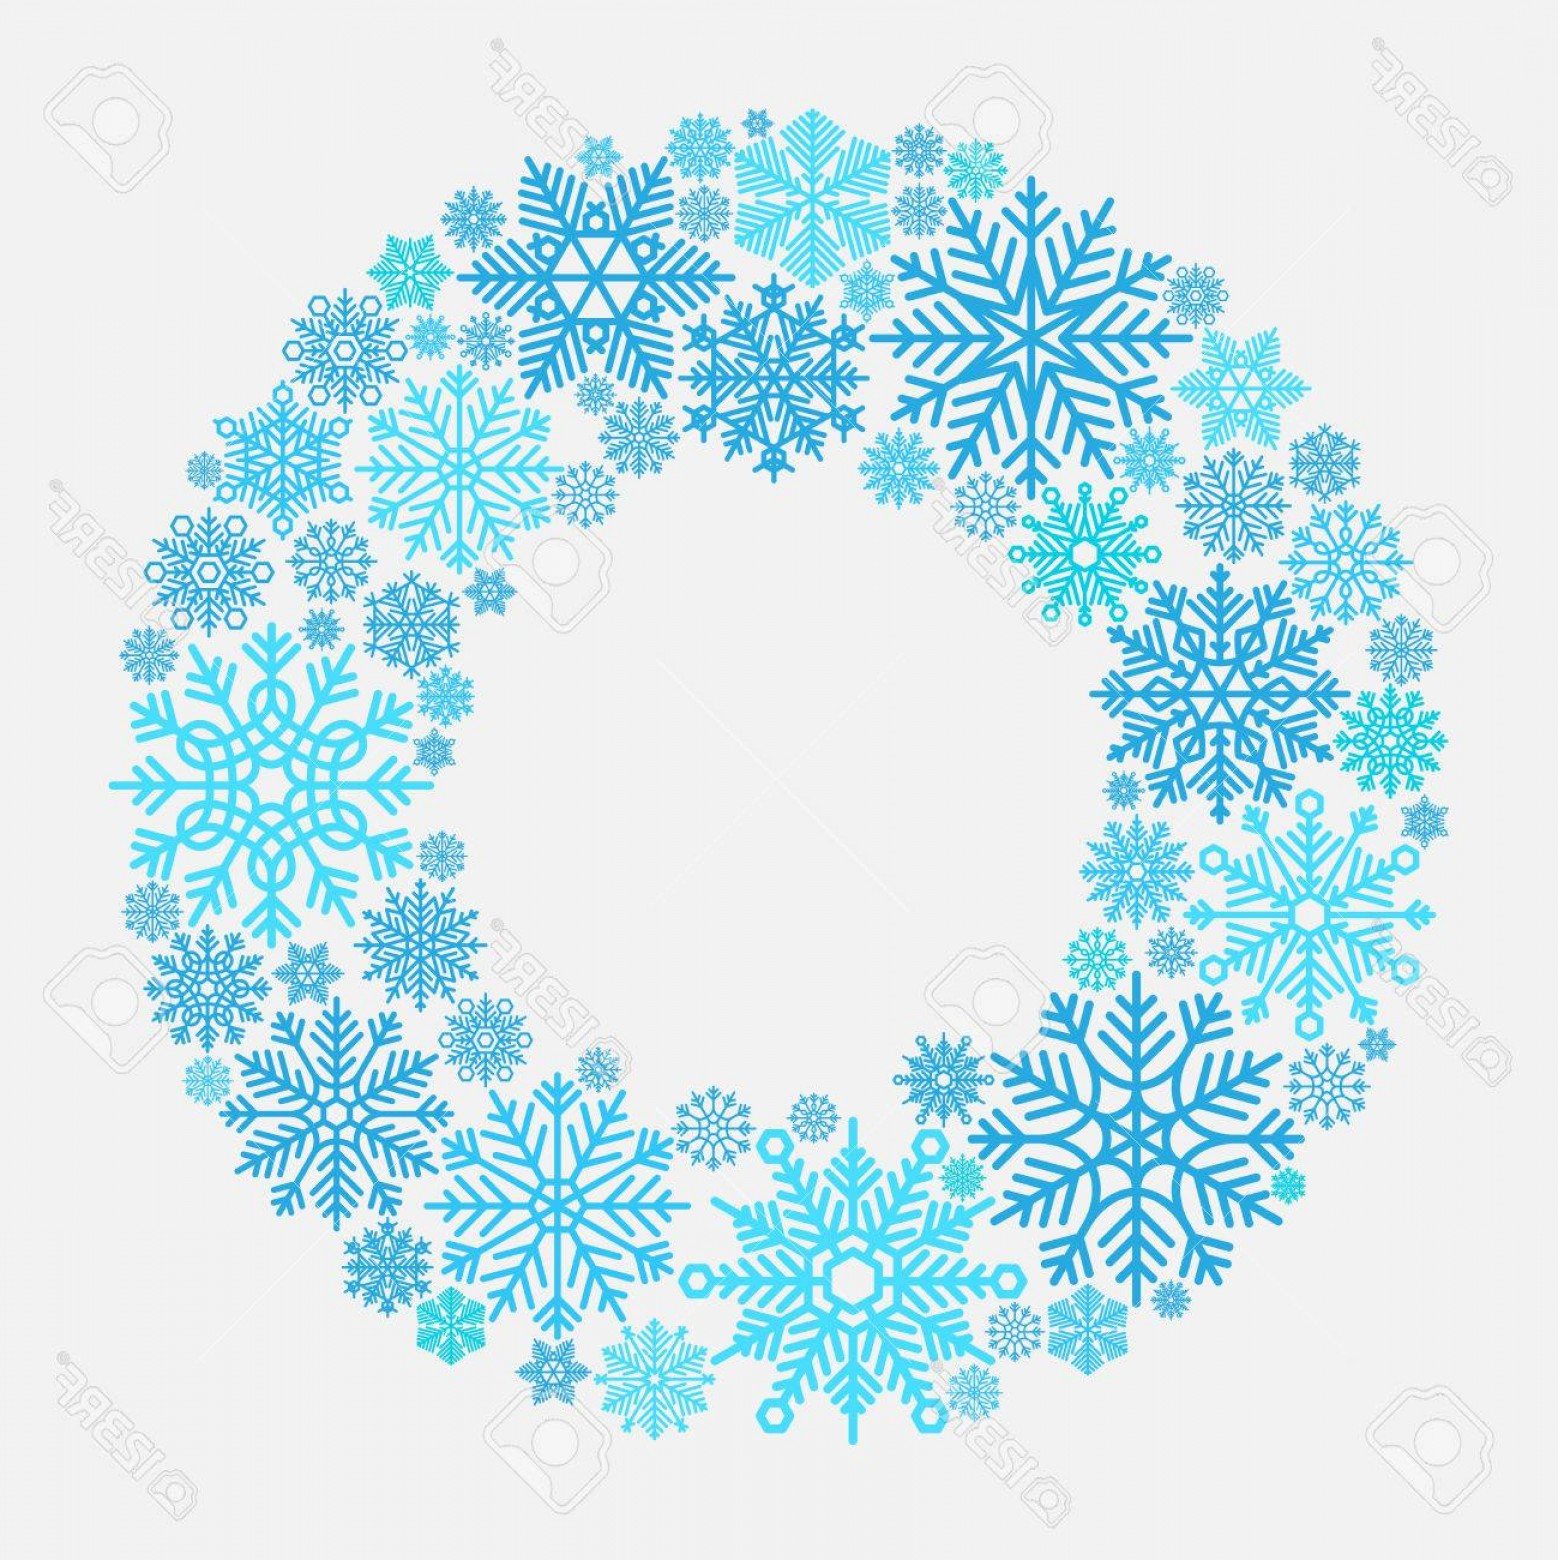 Vector Snowflake Wreath: Photostock Vector Snowflake Wreath Vector Snowflakes Frame Isolated On White For Xmas Door Invitation